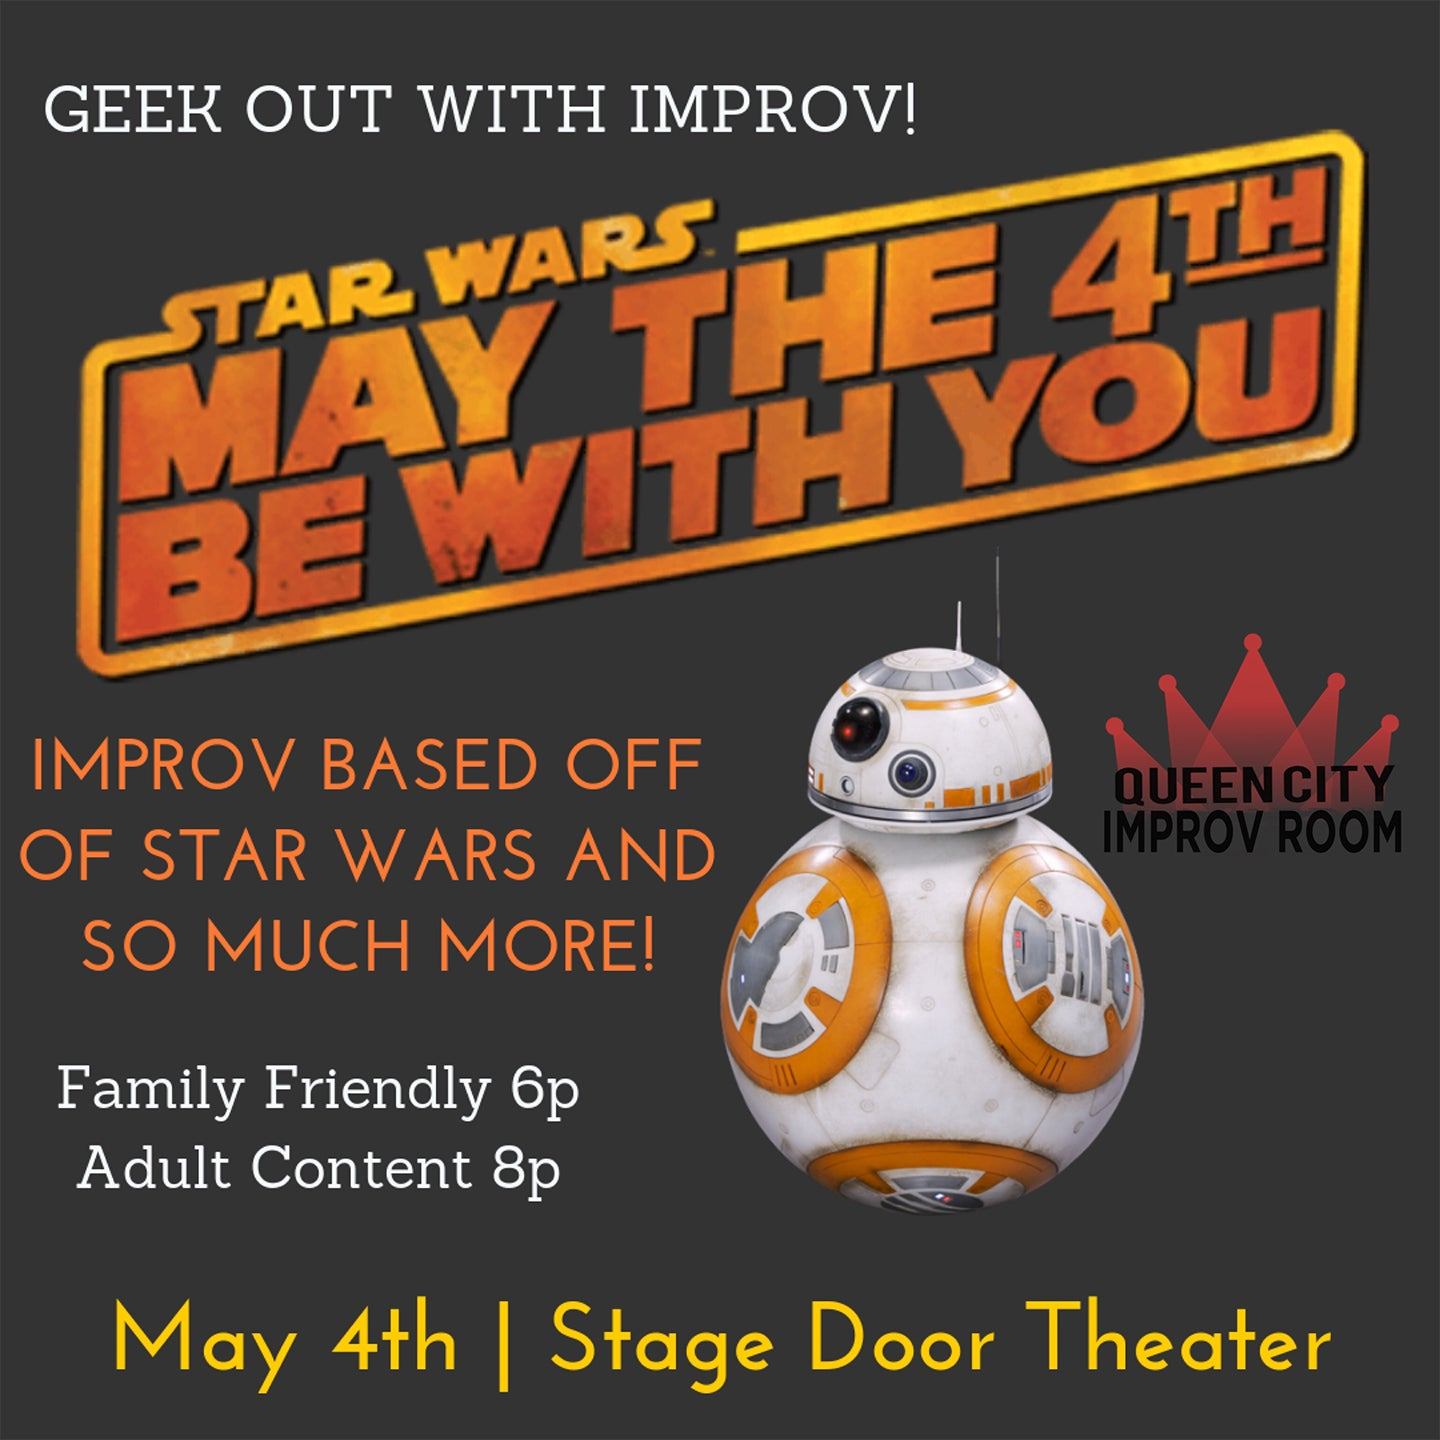 Queen City Improv Room: Family Friendly Geek Show